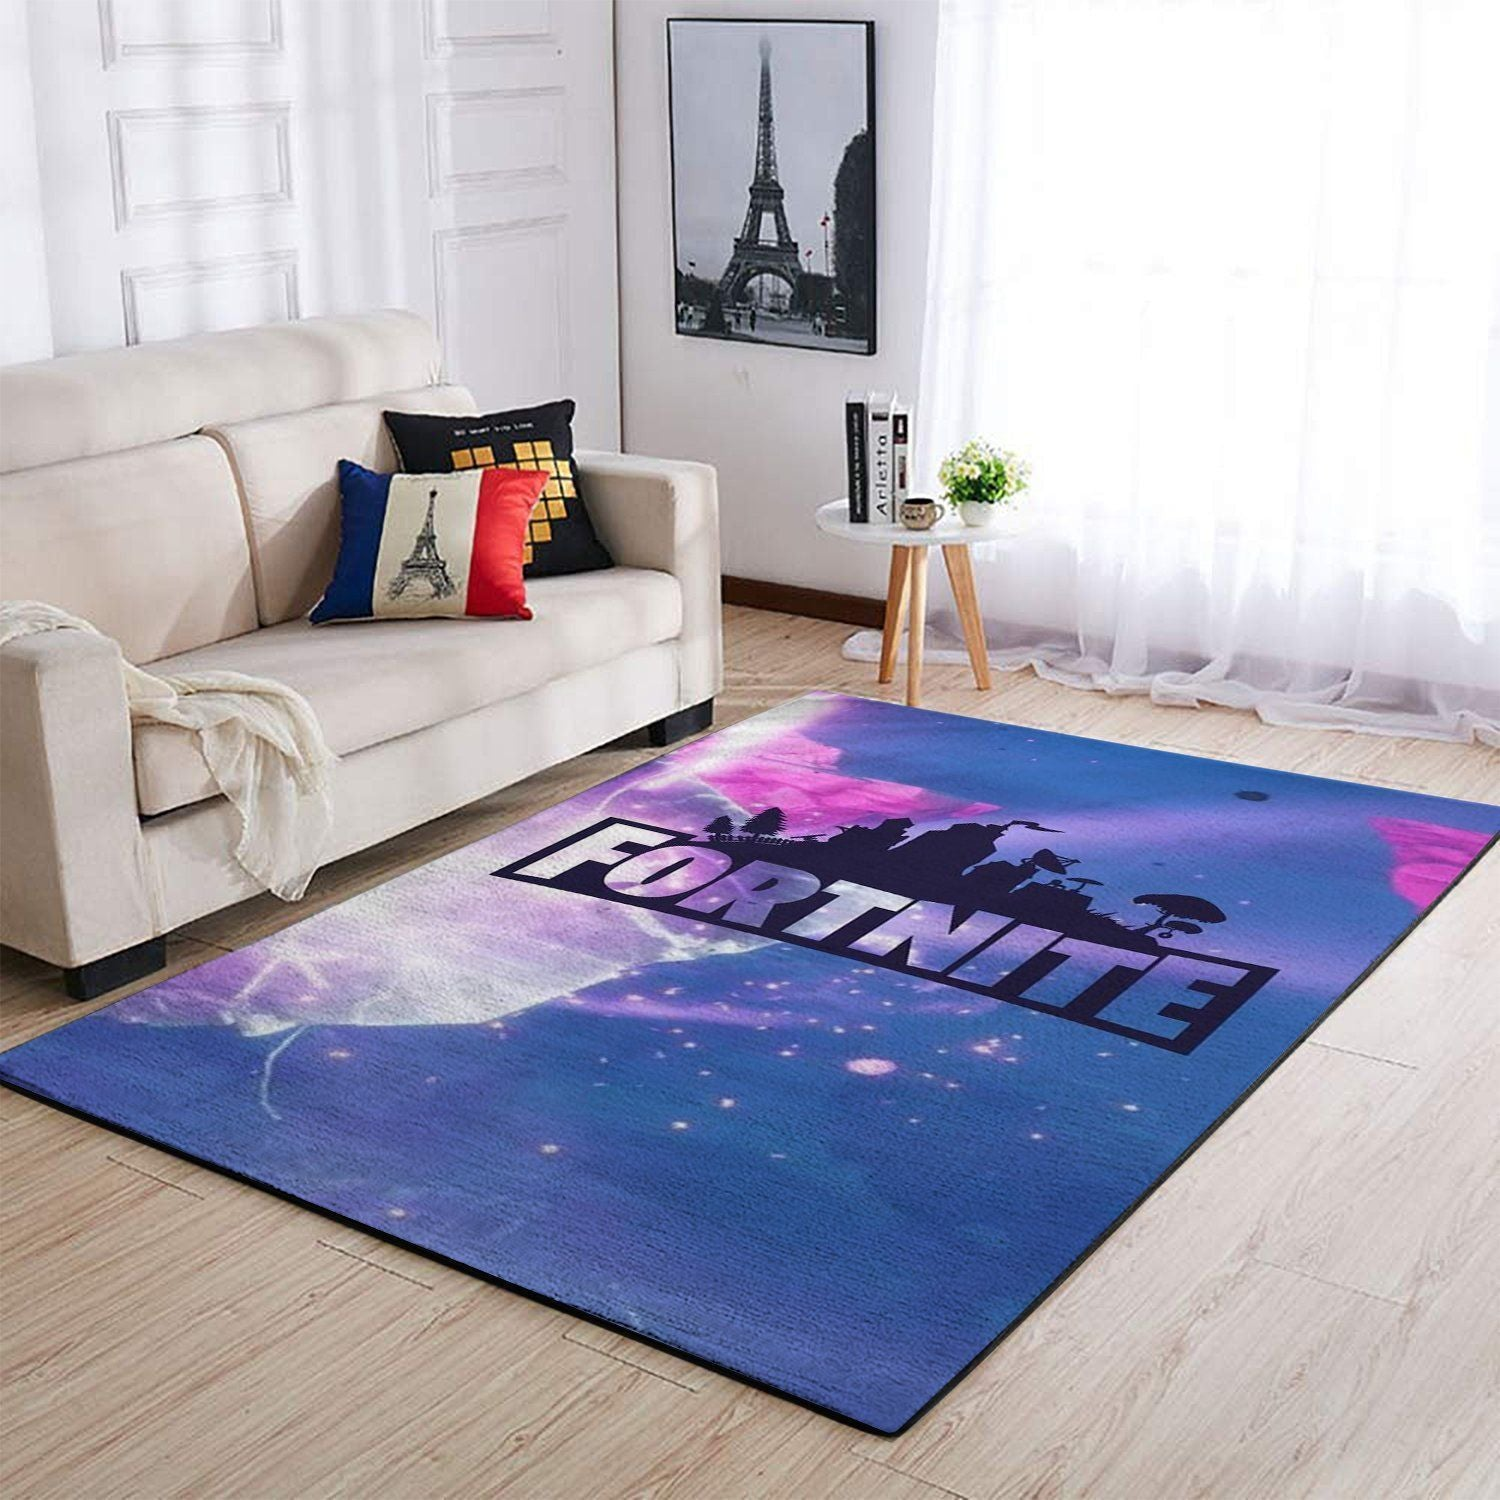 Fortnite Area Rug Video Game Carpet, Gamer Living Room Rugs, Floor Decor 1909261